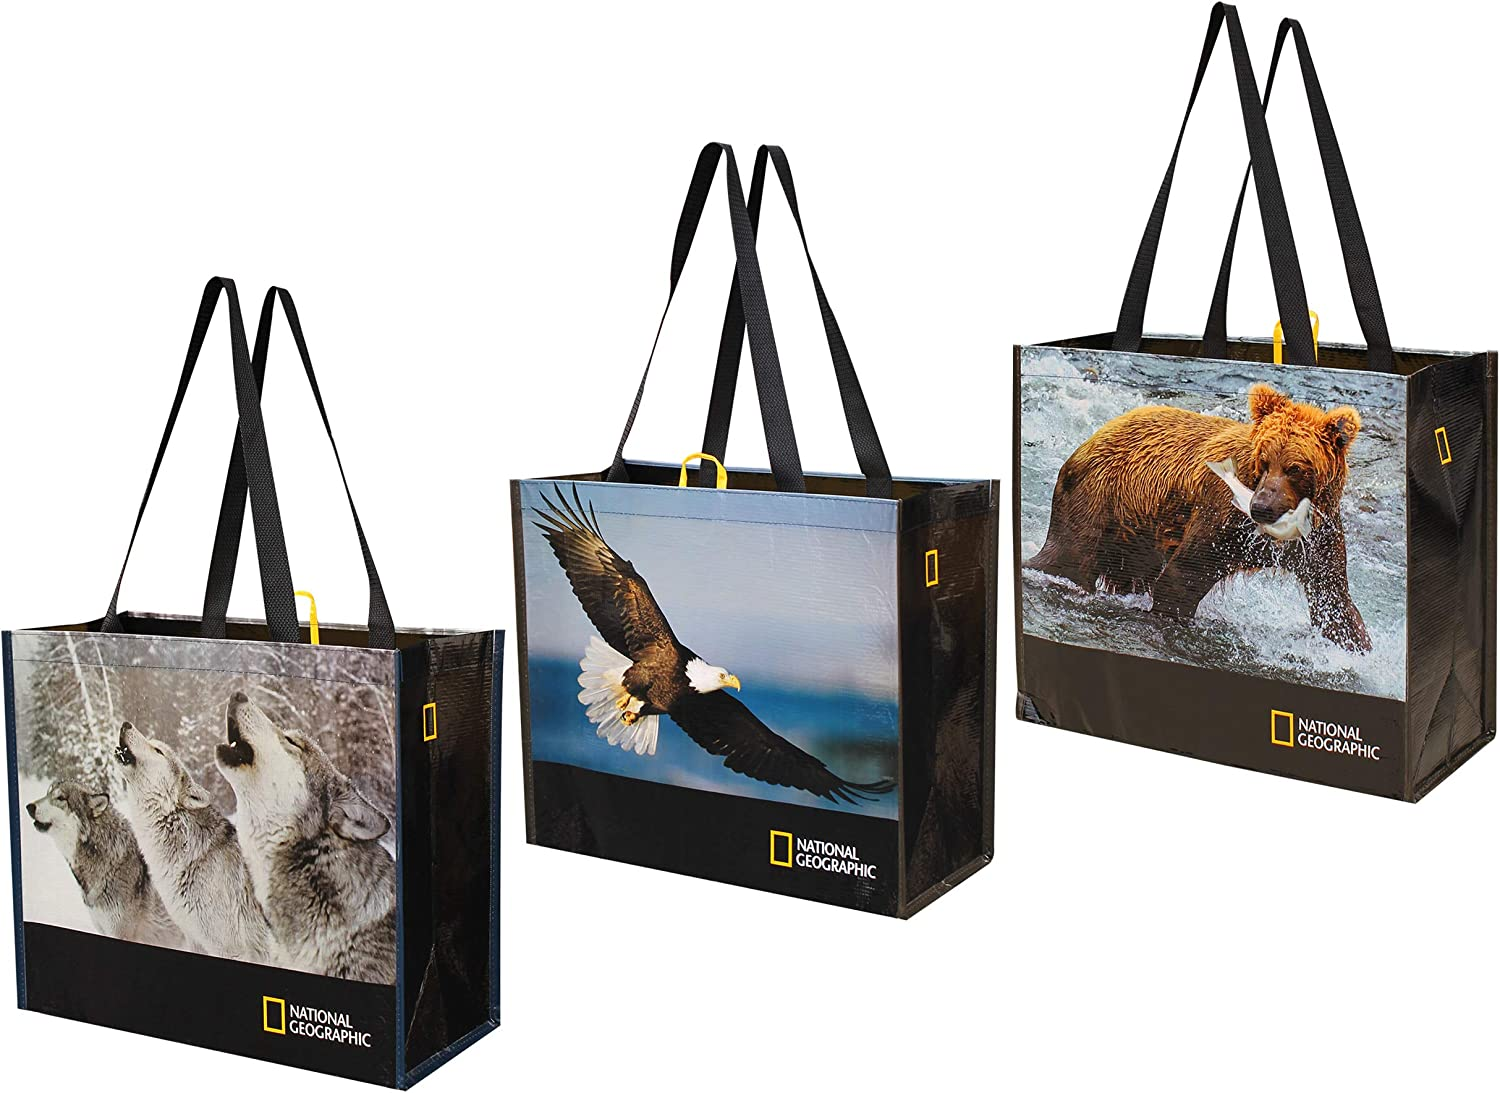 Reusable Grocery Bags Shopping Totes with National Geographic Prints Heavy Duty Made From Recycled Plastic Bottles Laminated Rpet ( Set of 3) (Eagle/Bear/Wolves)